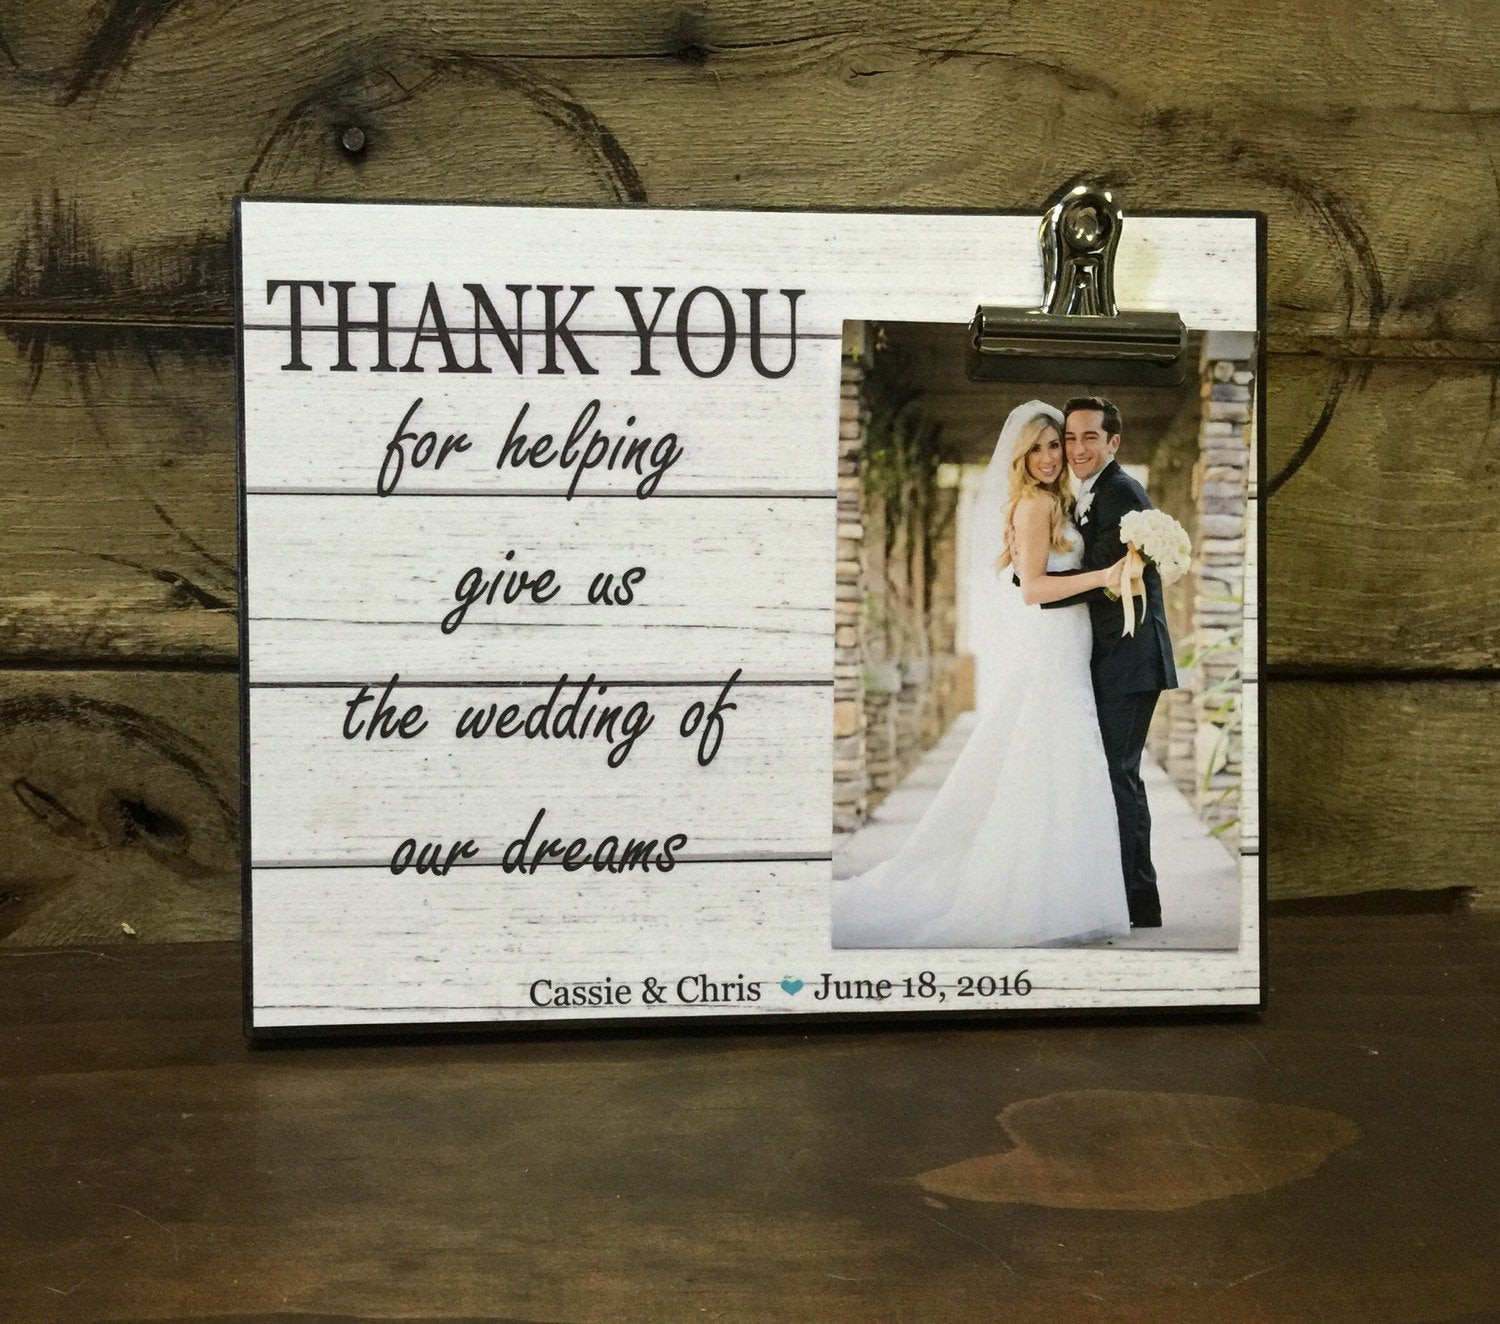 Best ideas about Wedding Officiant Gift Ideas . Save or Pin Wedding ficiant Gift Wedding Gift Thank You For Helping Now.